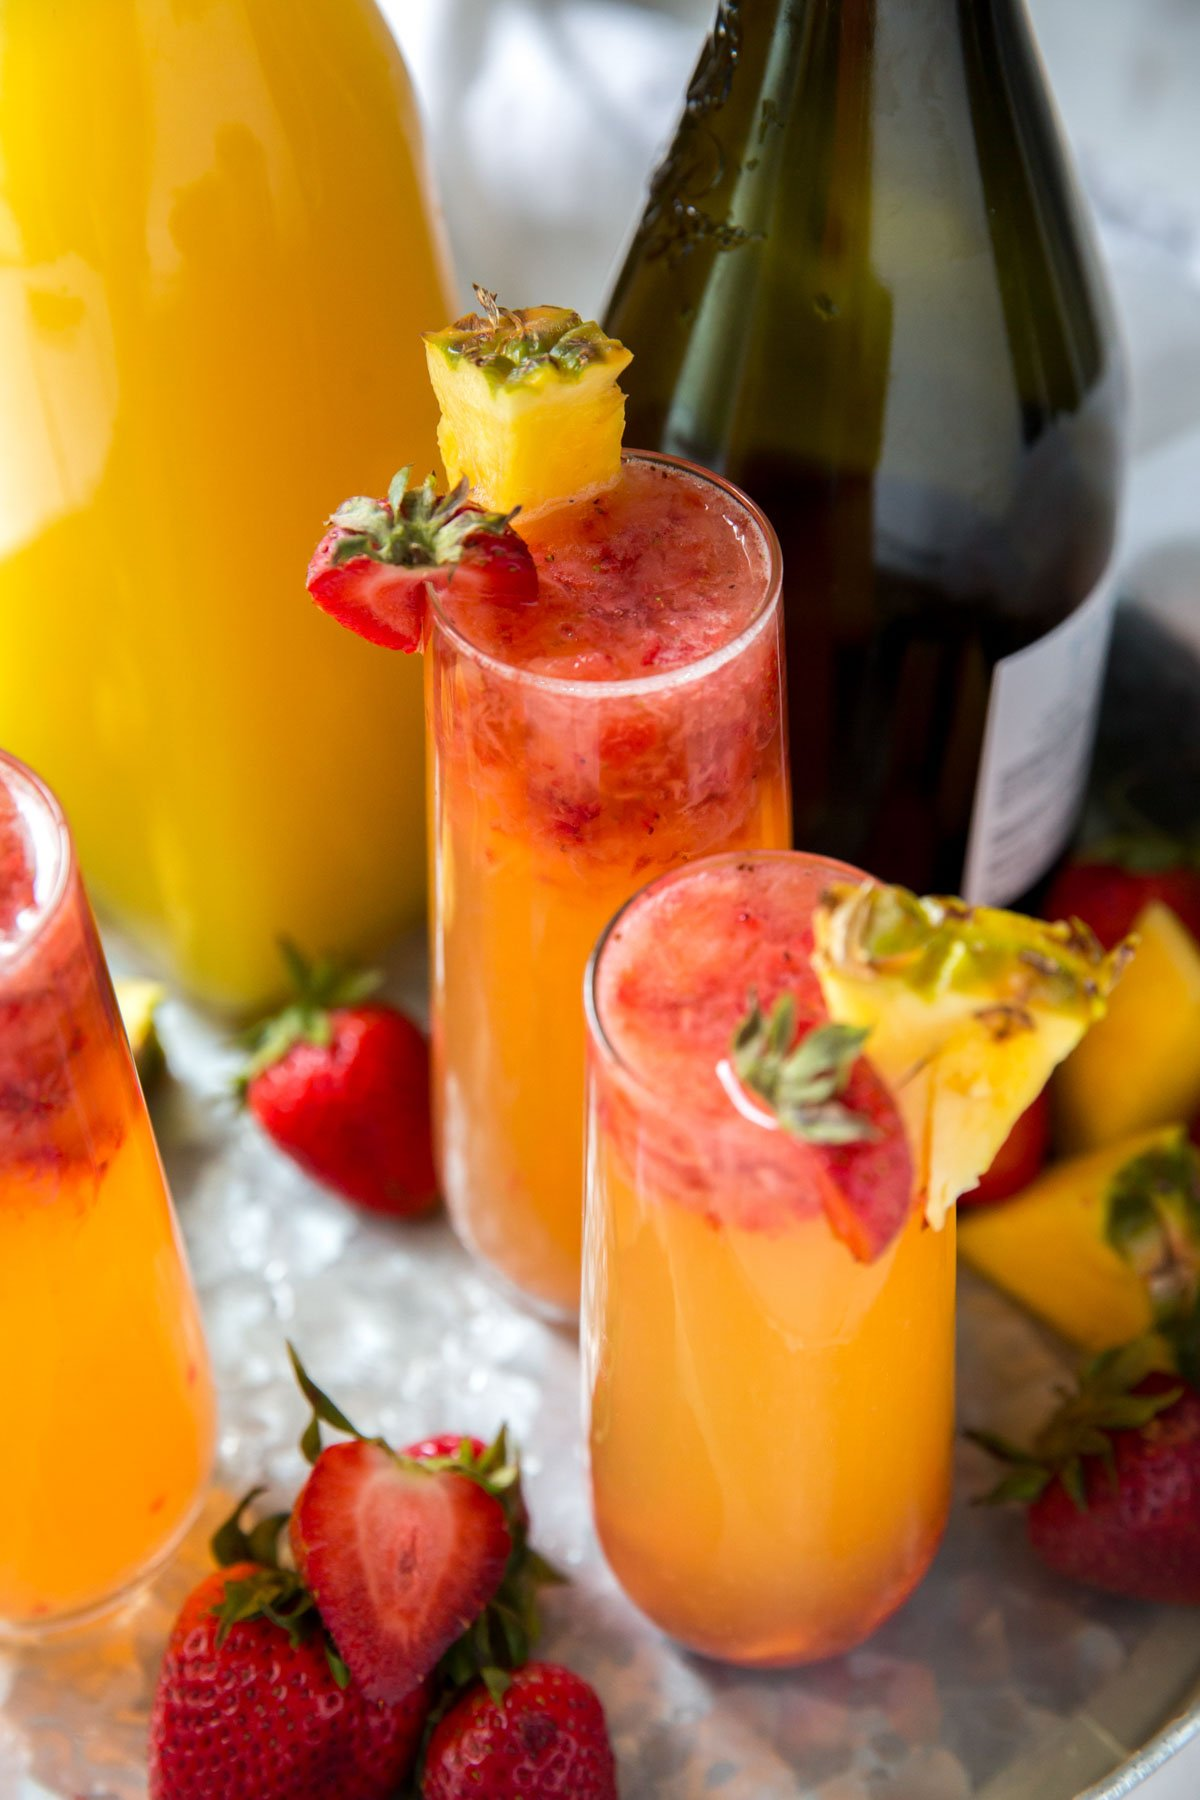 champagne glasses with pineapple juice and strawberries, bottle of champagne